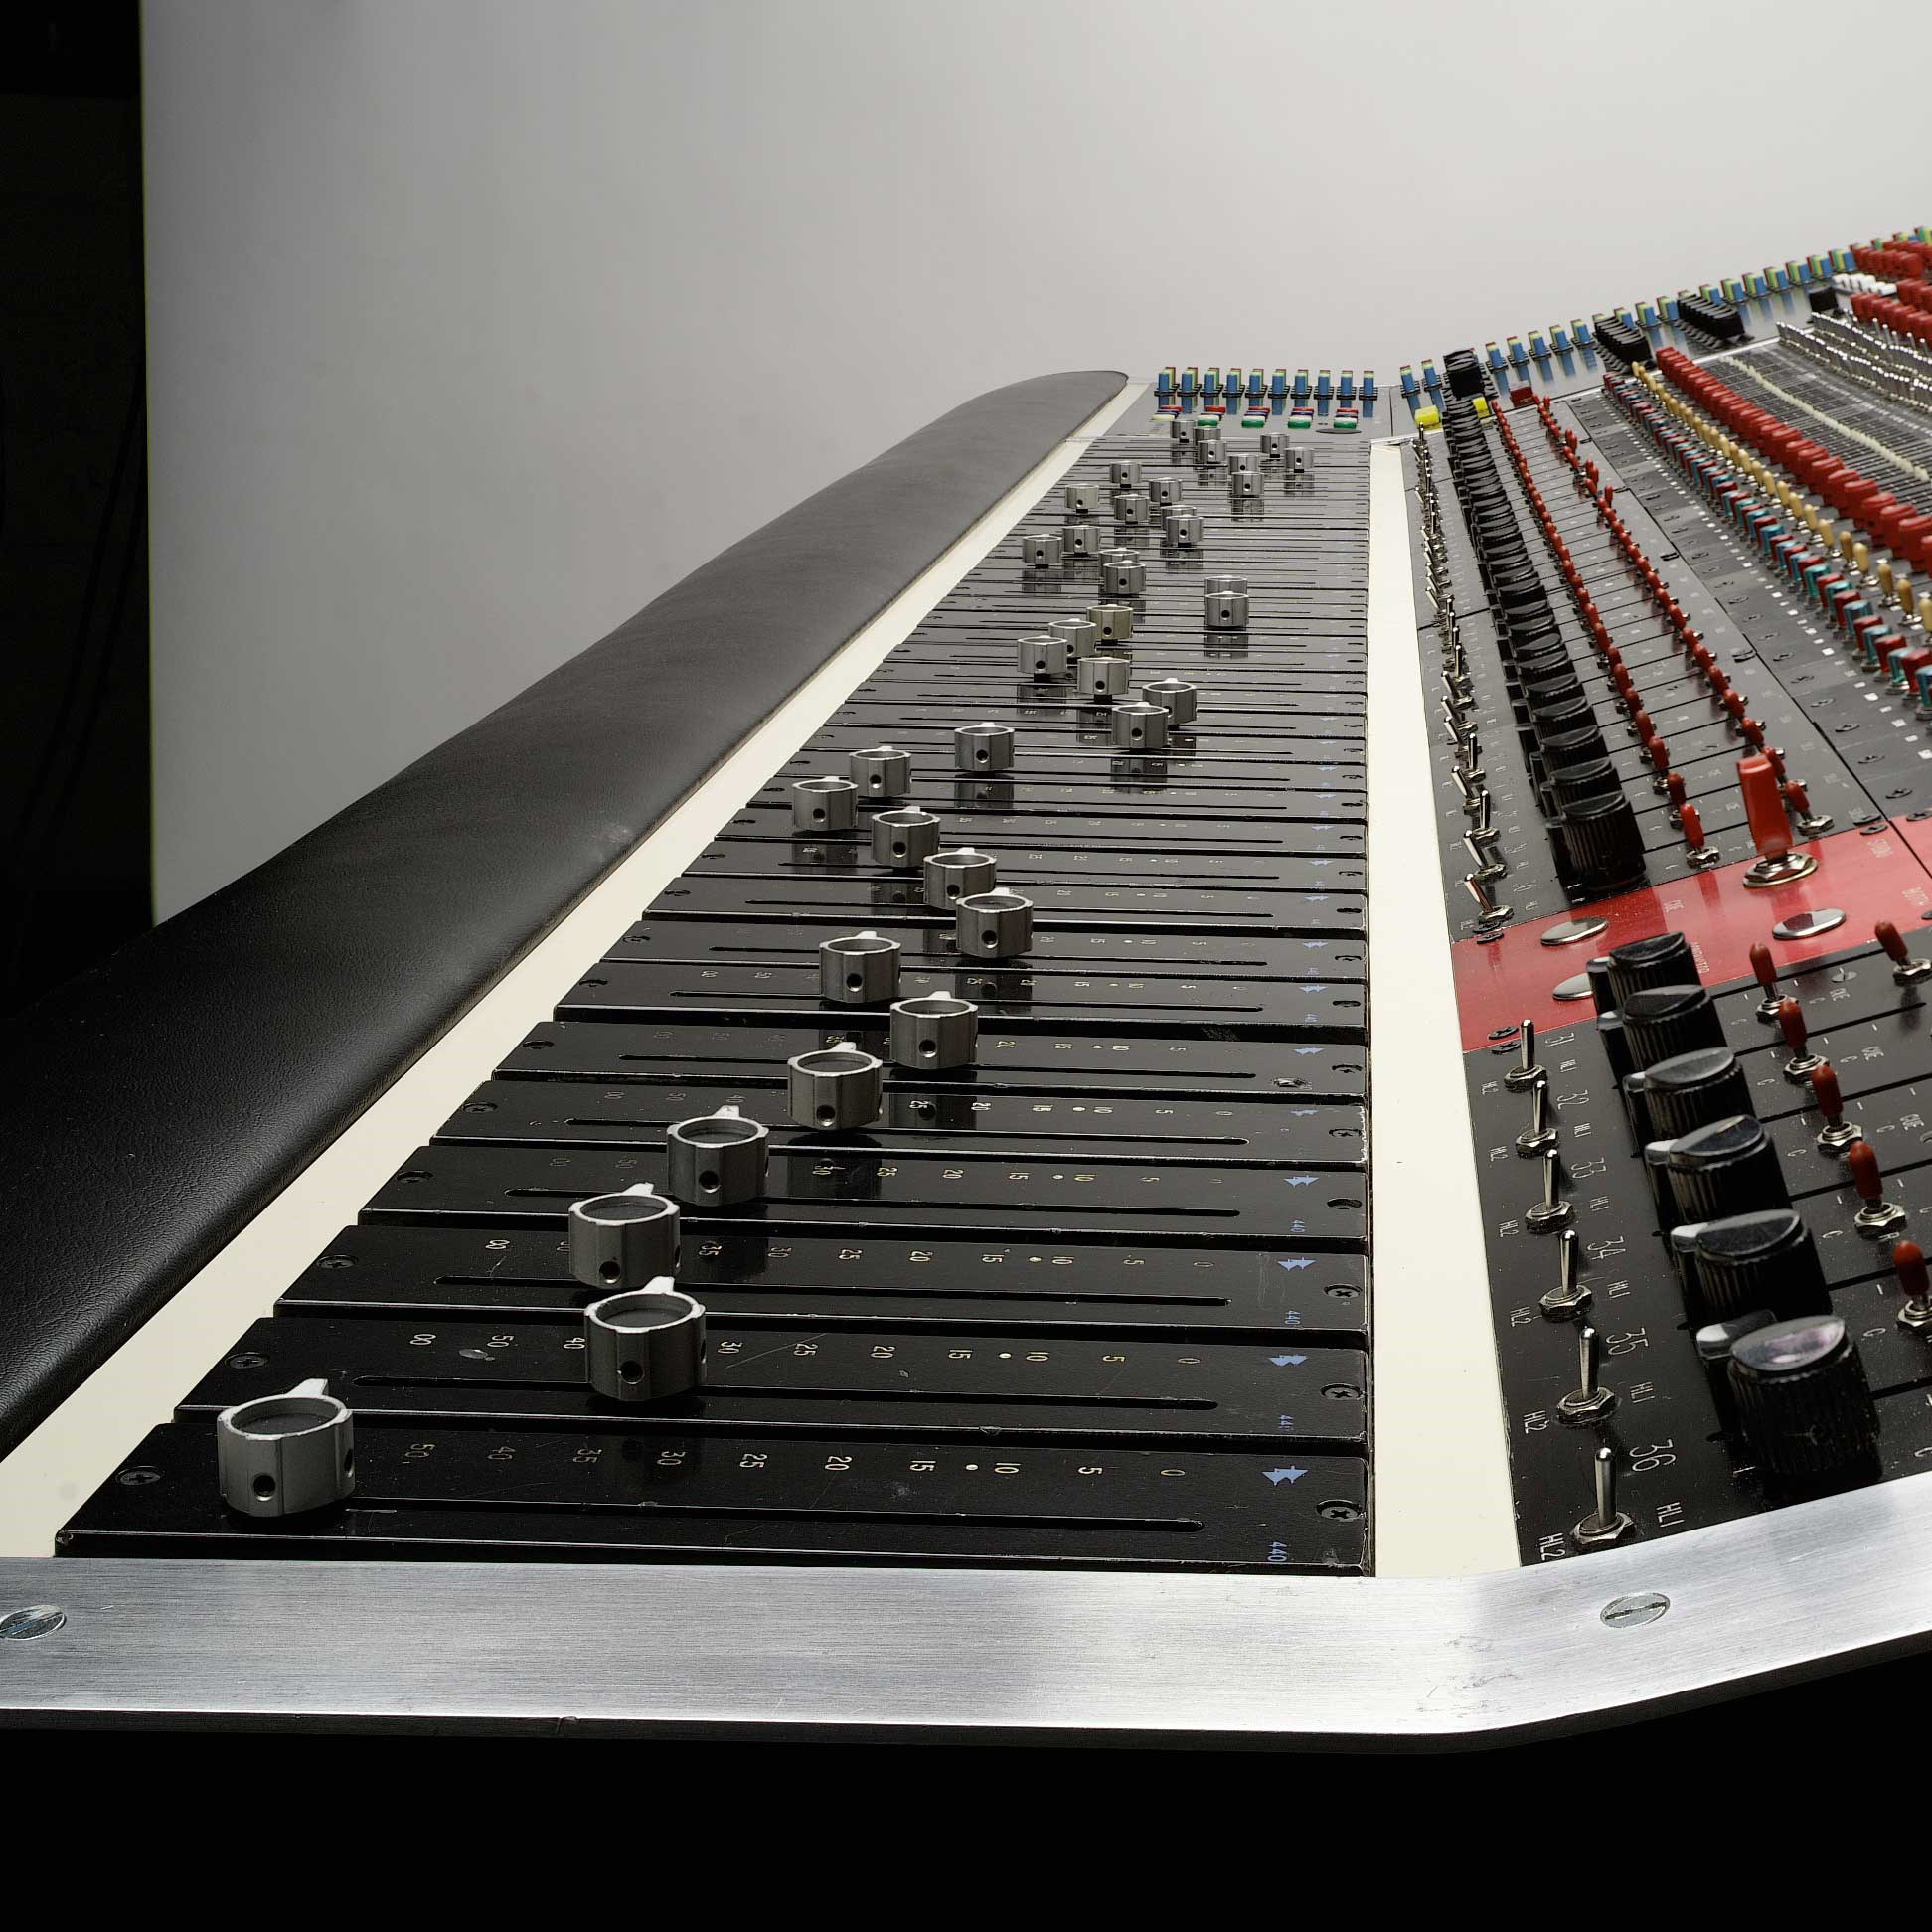 MoPOP First Artifact - Jimi Hendrix's Mixing Console